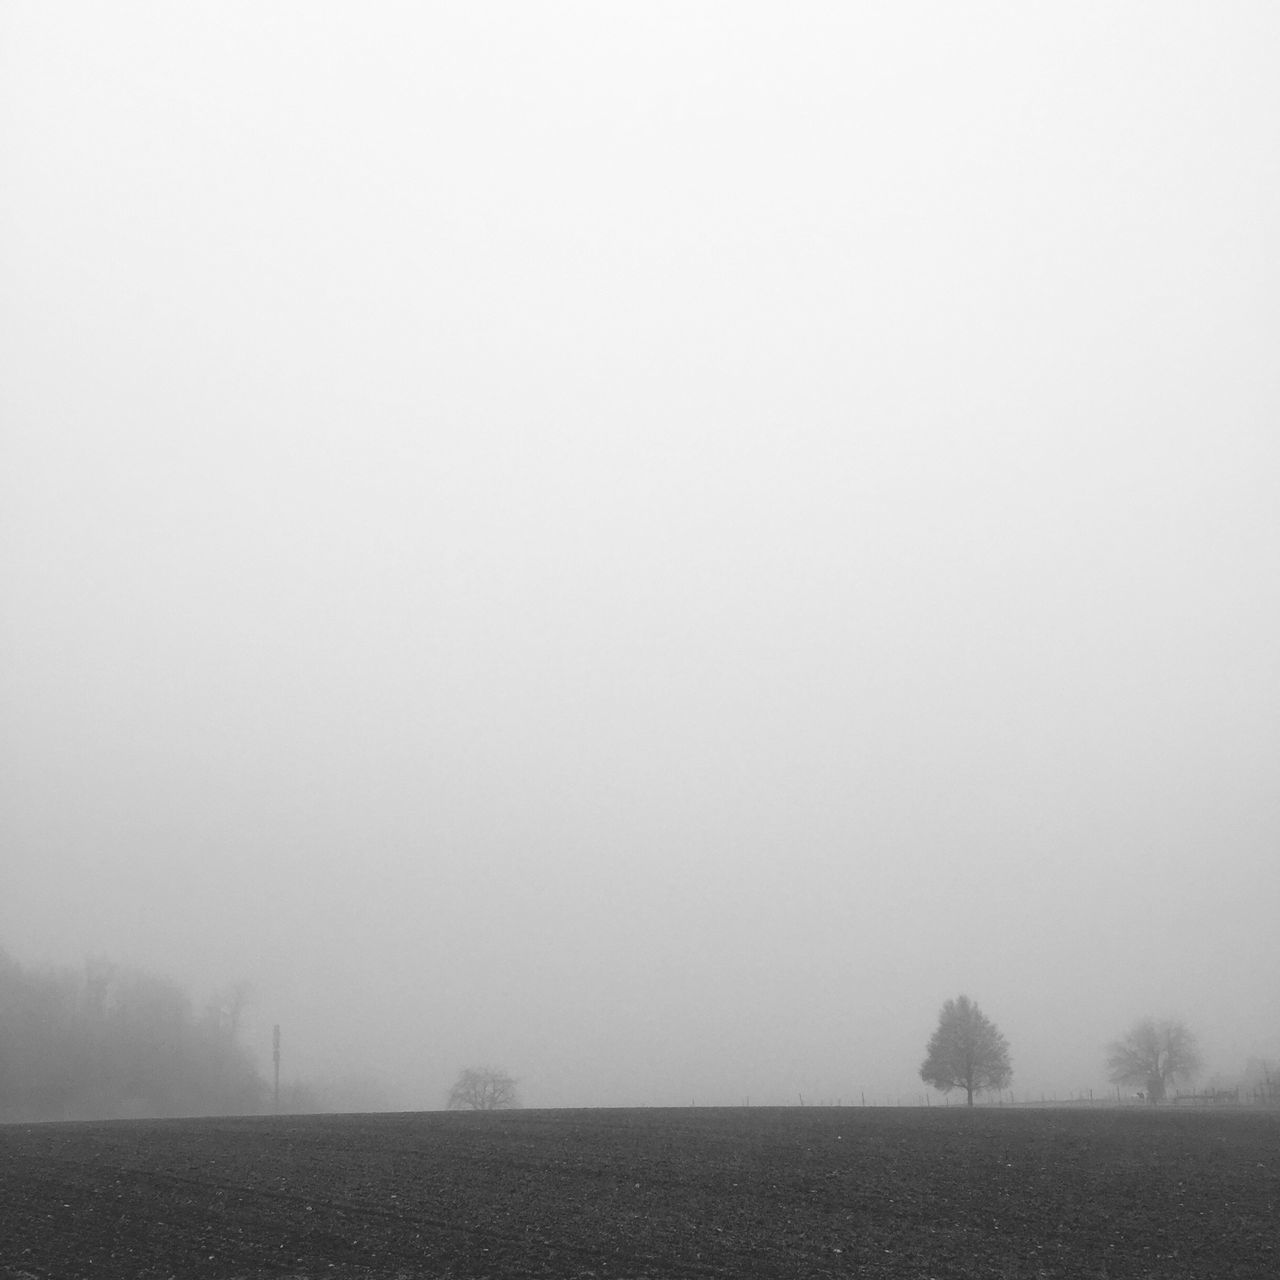 landscape, tranquility, copy space, fog, nature, tranquil scene, field, beauty in nature, scenics, mist, outdoors, agriculture, hazy, plough, no people, day, rural scene, tree, sky